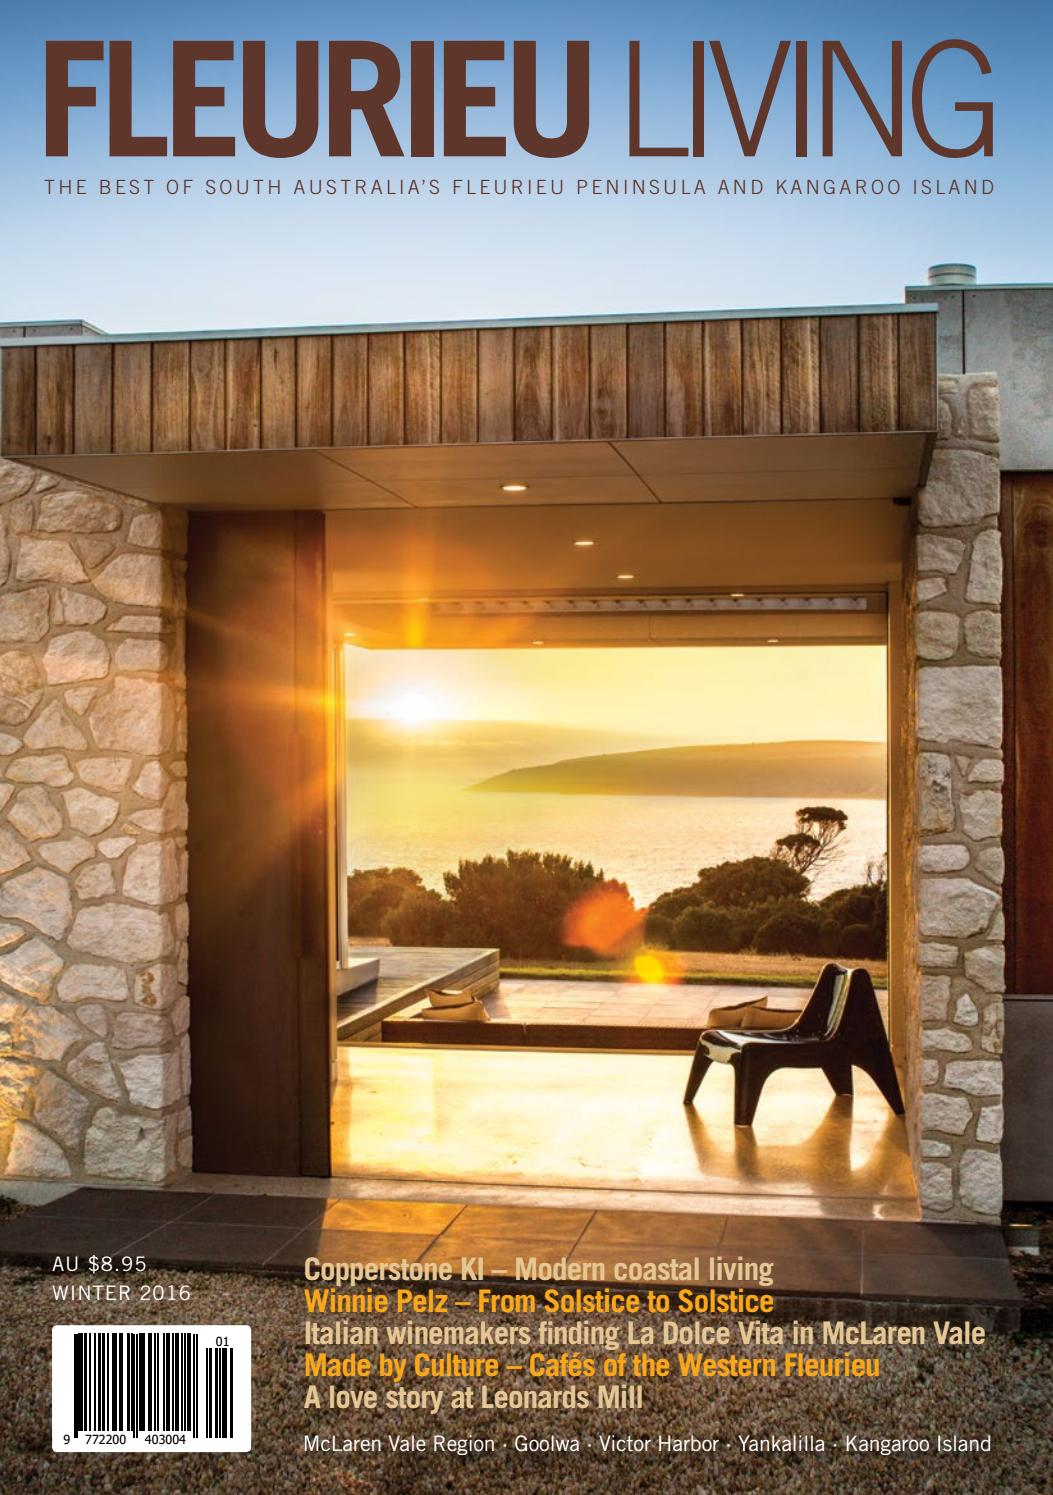 Fleurieu Living Magazine Winter 2016 By Pty Ltd Issuu Froot Loops 300g Free Foot Ball Bowl P